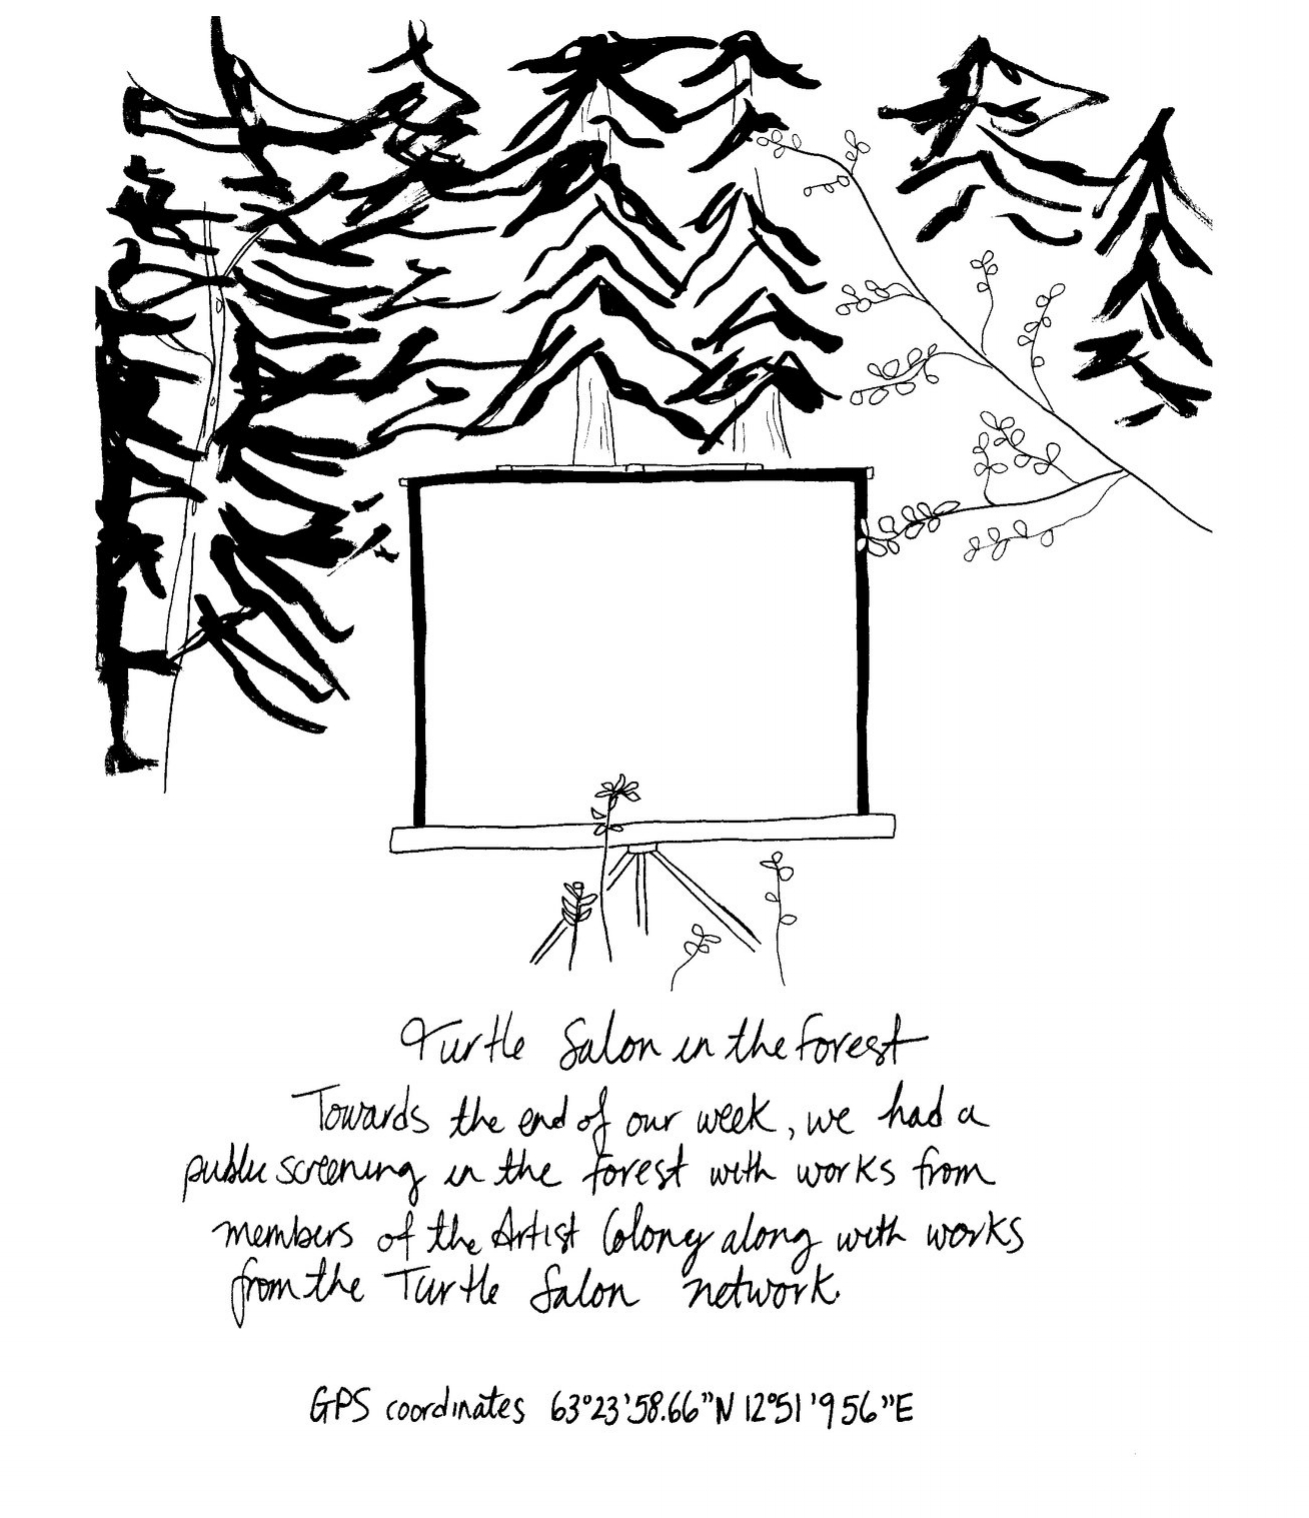 a screening in the forest